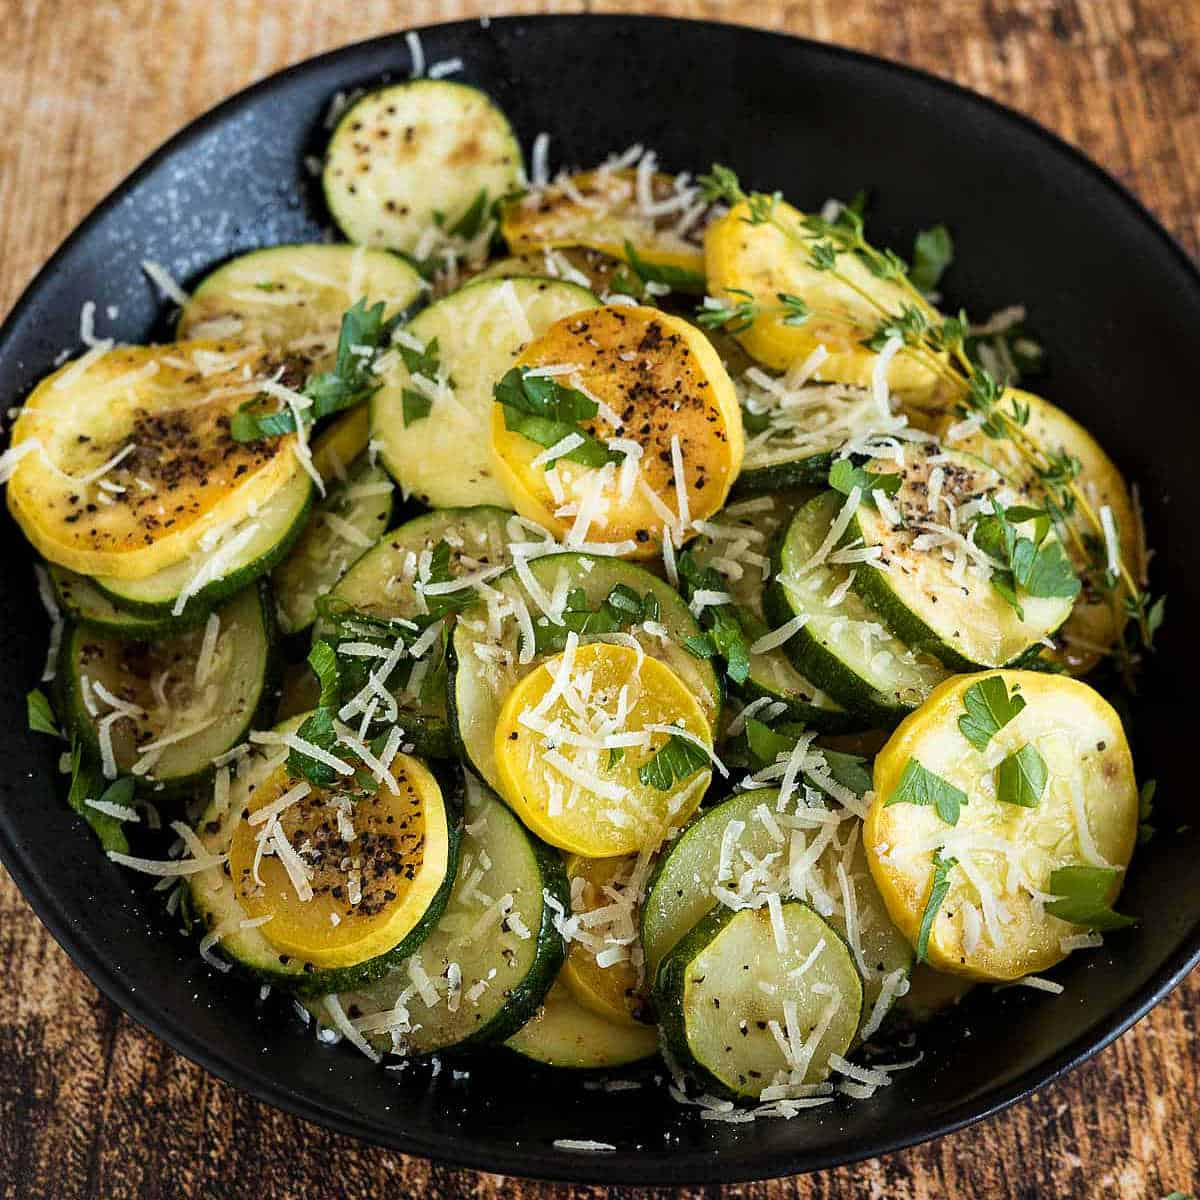 Zucchini and yellow squash cut into circles sprinkled with grated parmesan cheese and fresh parsley.